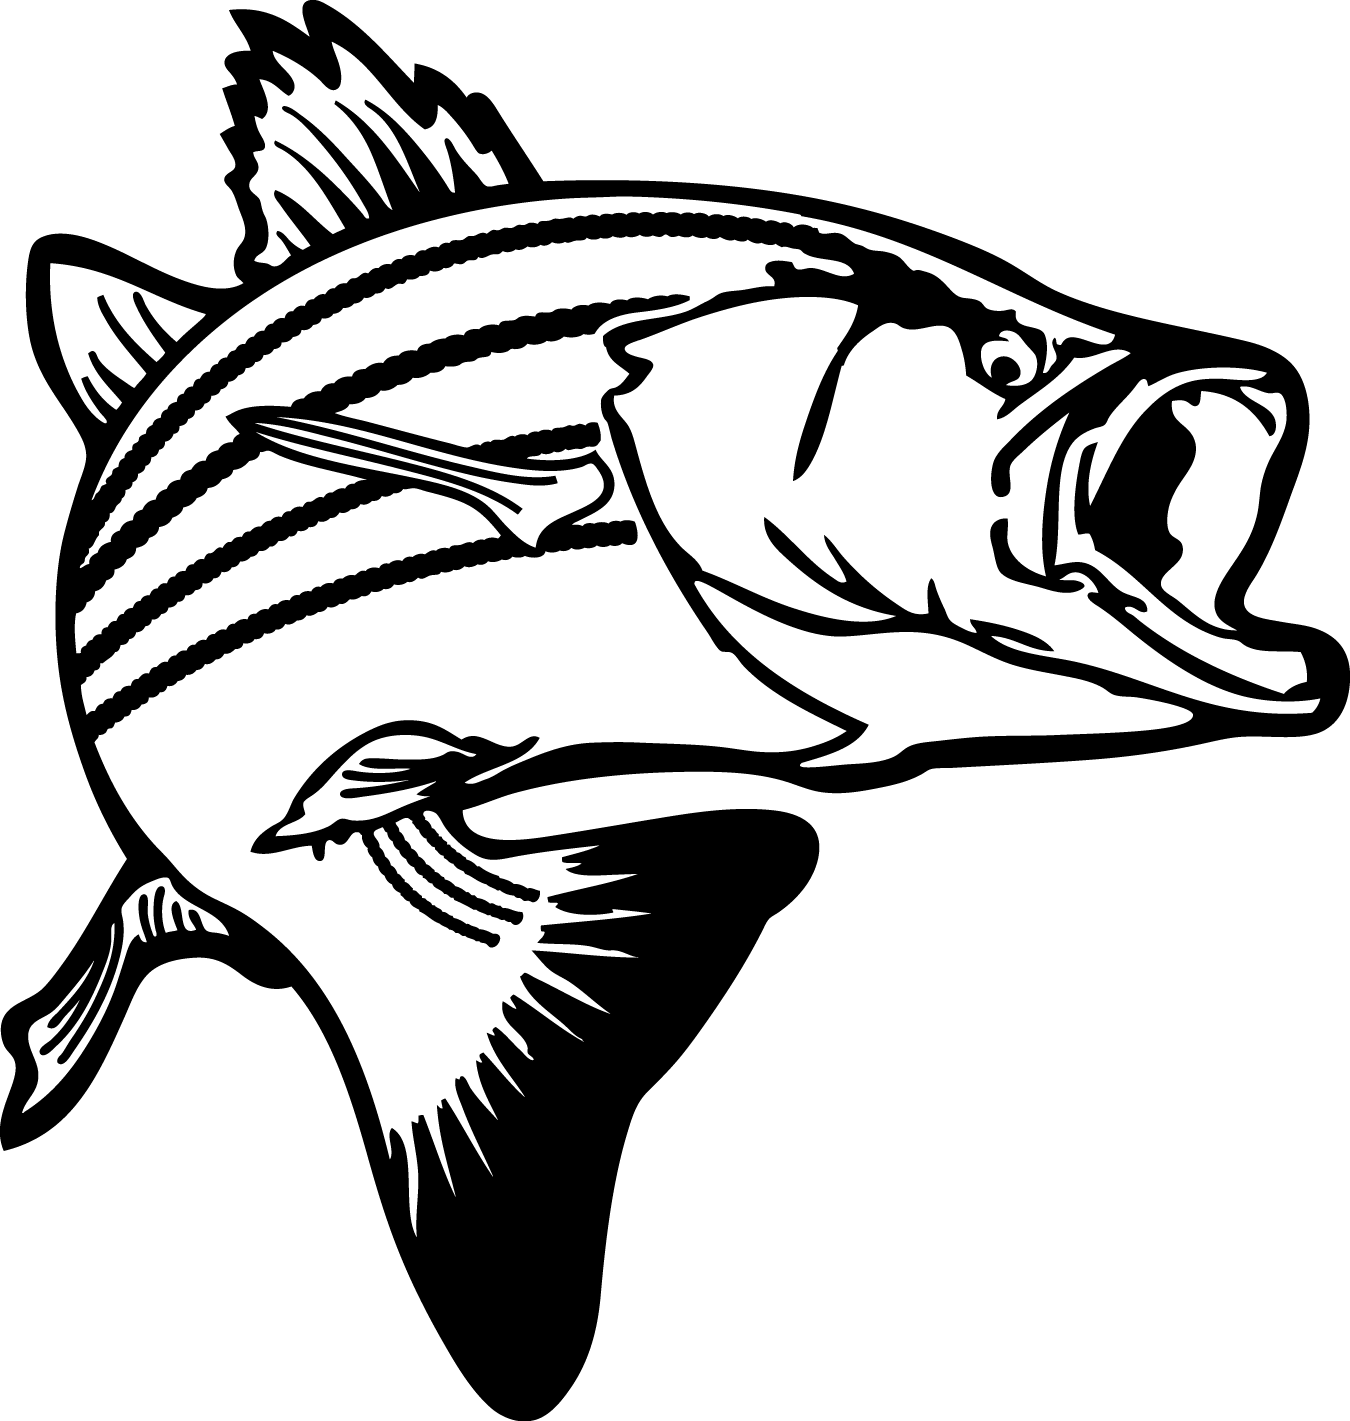 Download Free Bass Cliparts Download Free Bass Cliparts Png Images Free Cliparts On Clipart Library